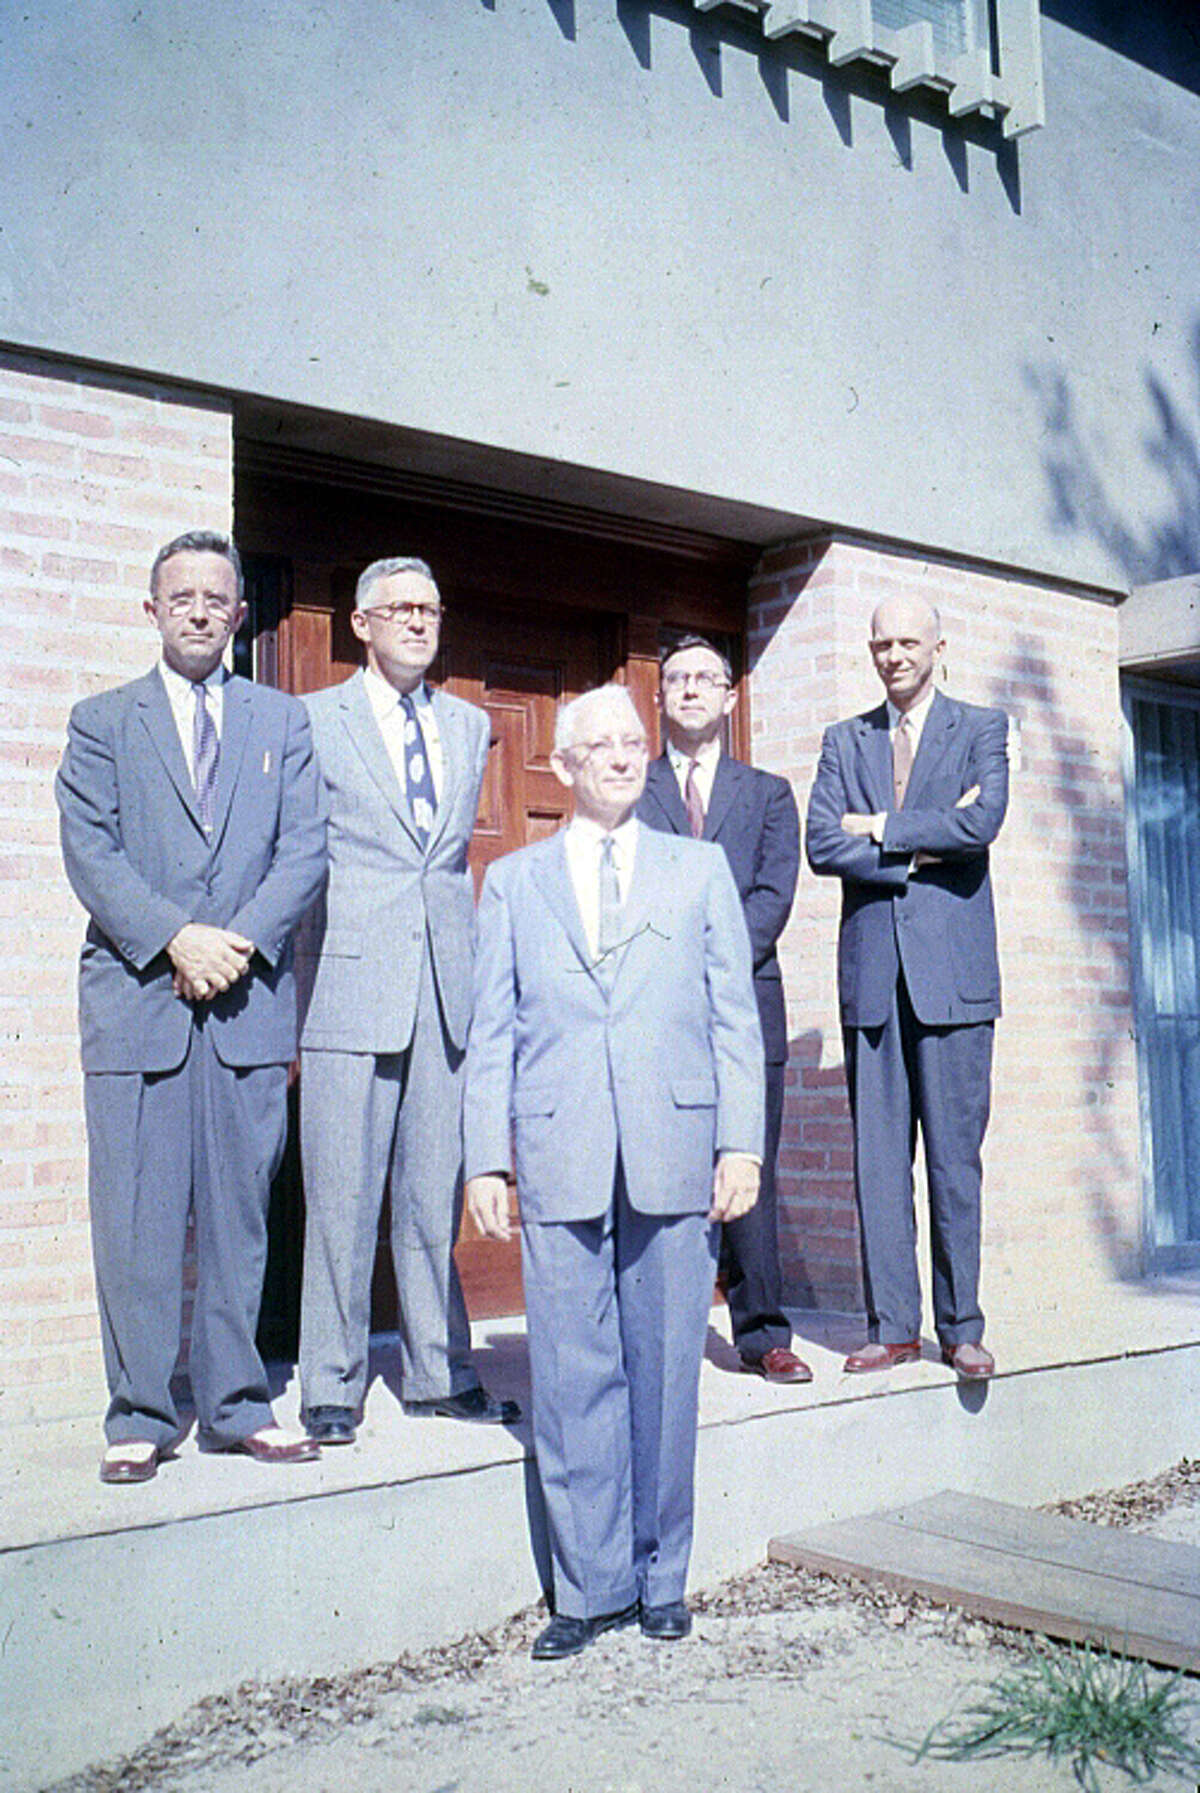 The masters of Rice's then five colleges, standing just outside the entrance to a campus building in 1957.